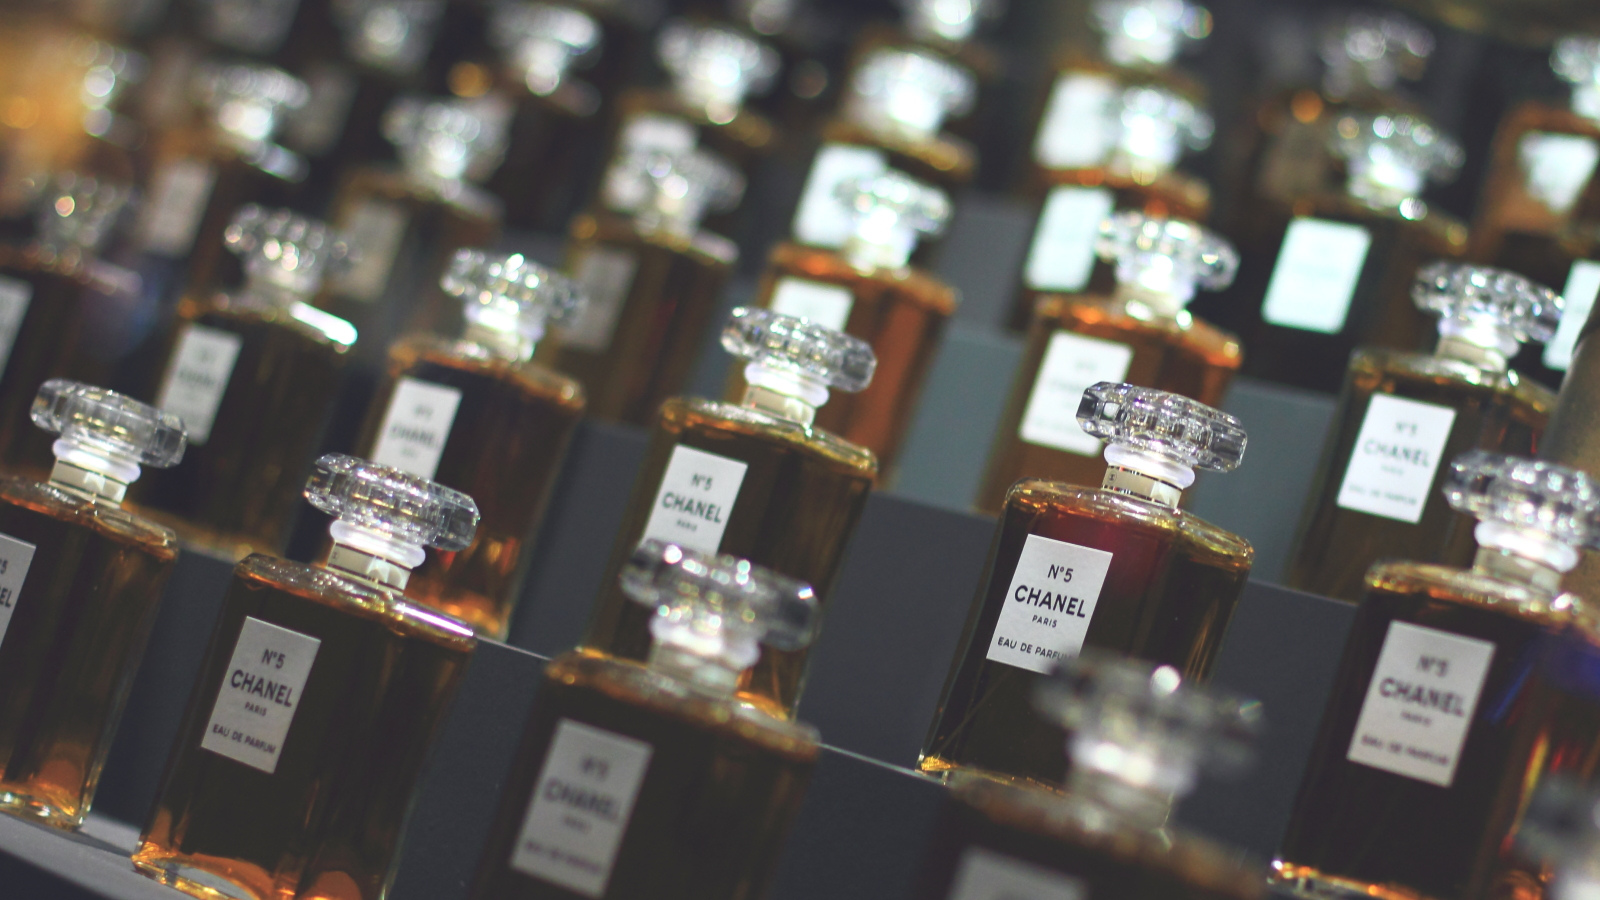 Bottles of Chanel No. 5